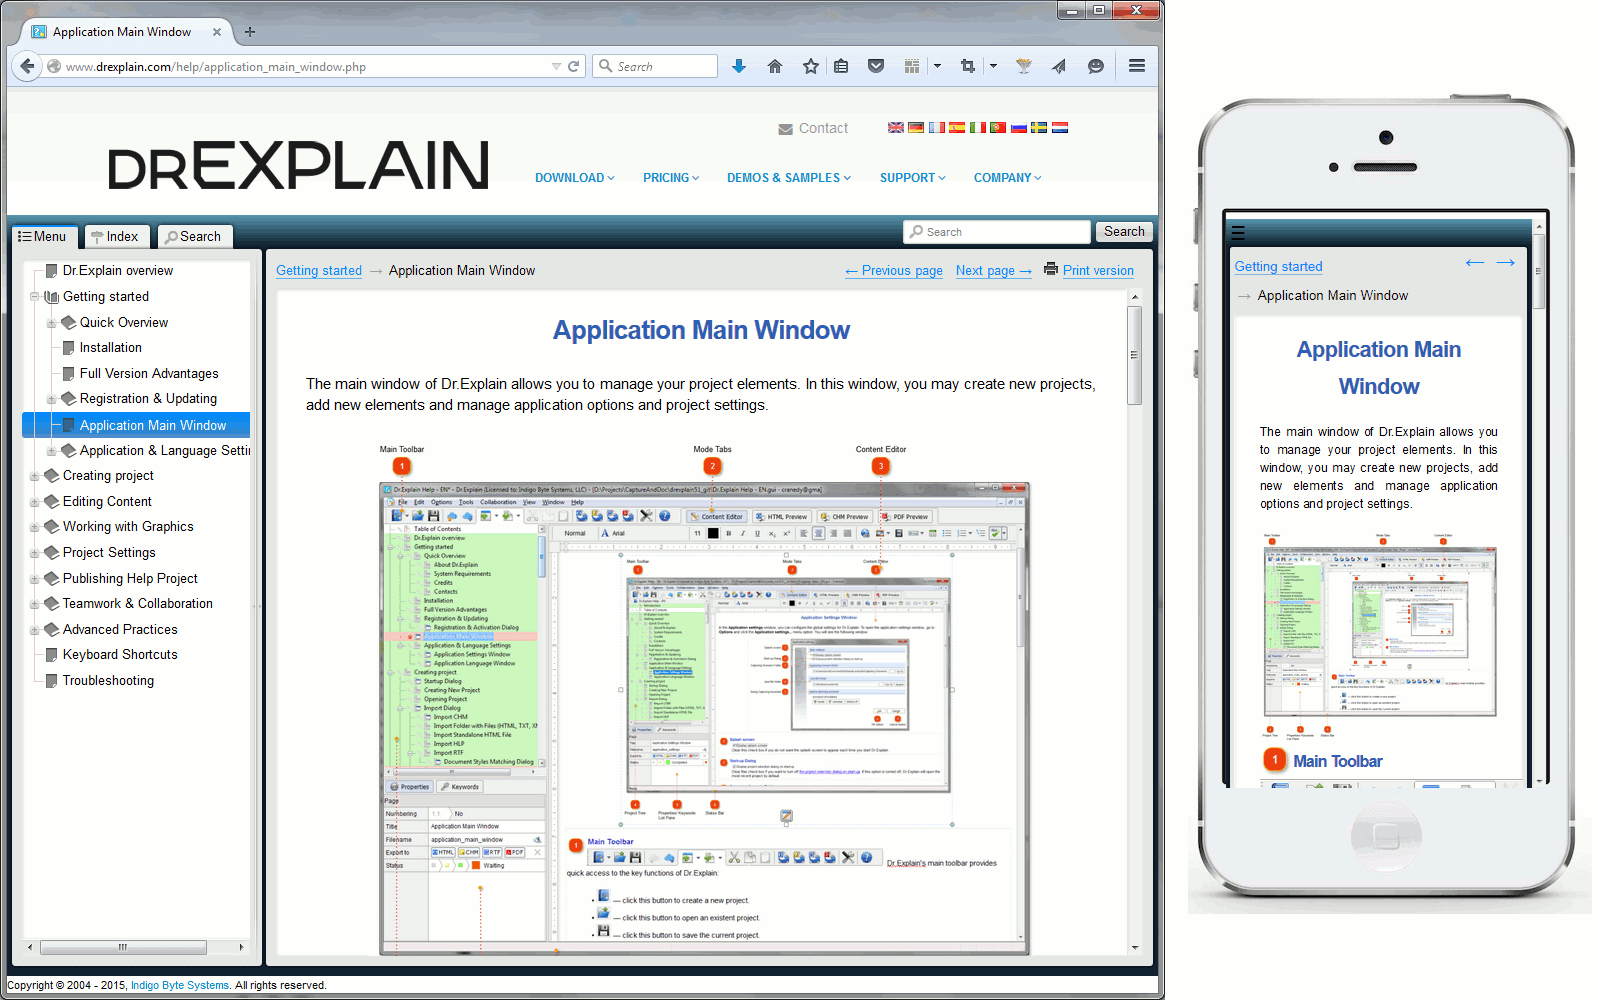 Dr Explain: A professional tool for creating mobile-friendly